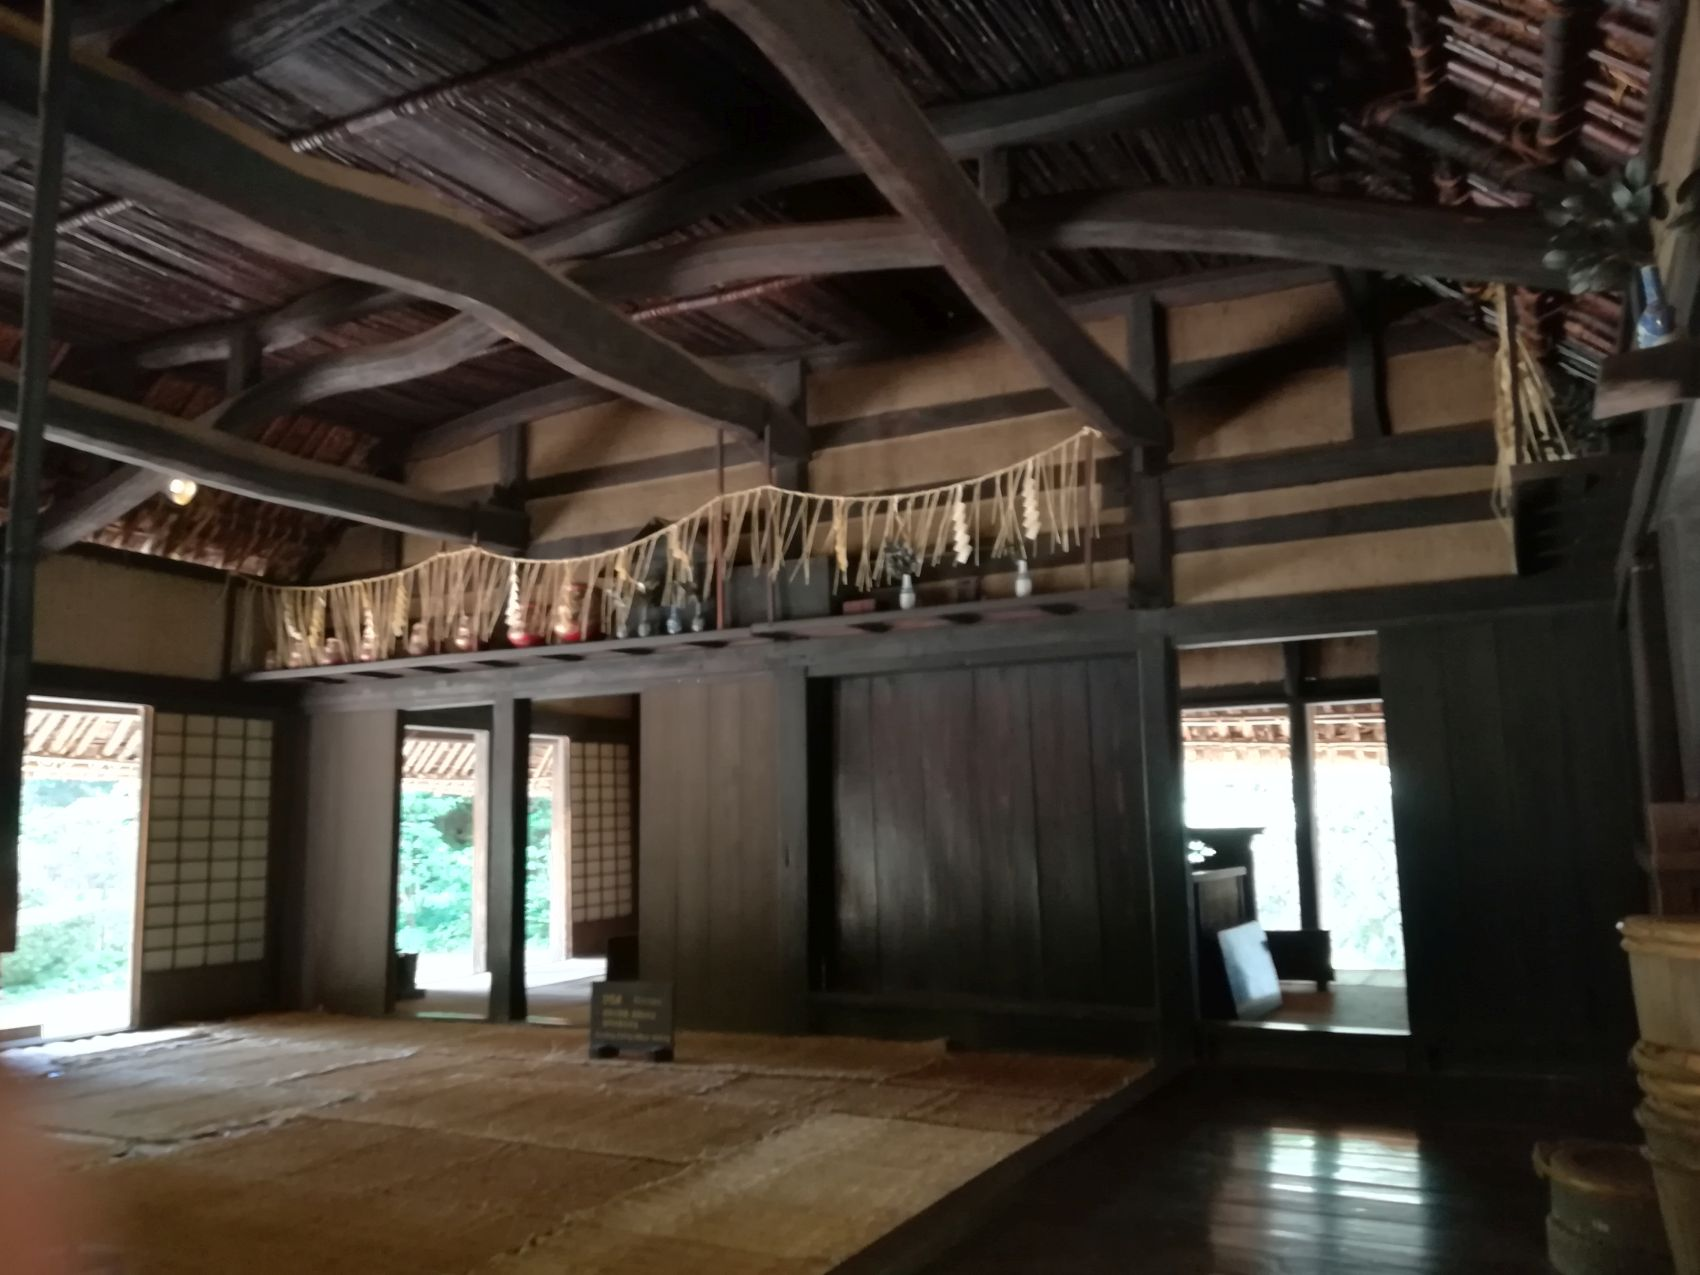 Minka: The Allure of Japanese Farmhouses and Other Old Dwellings